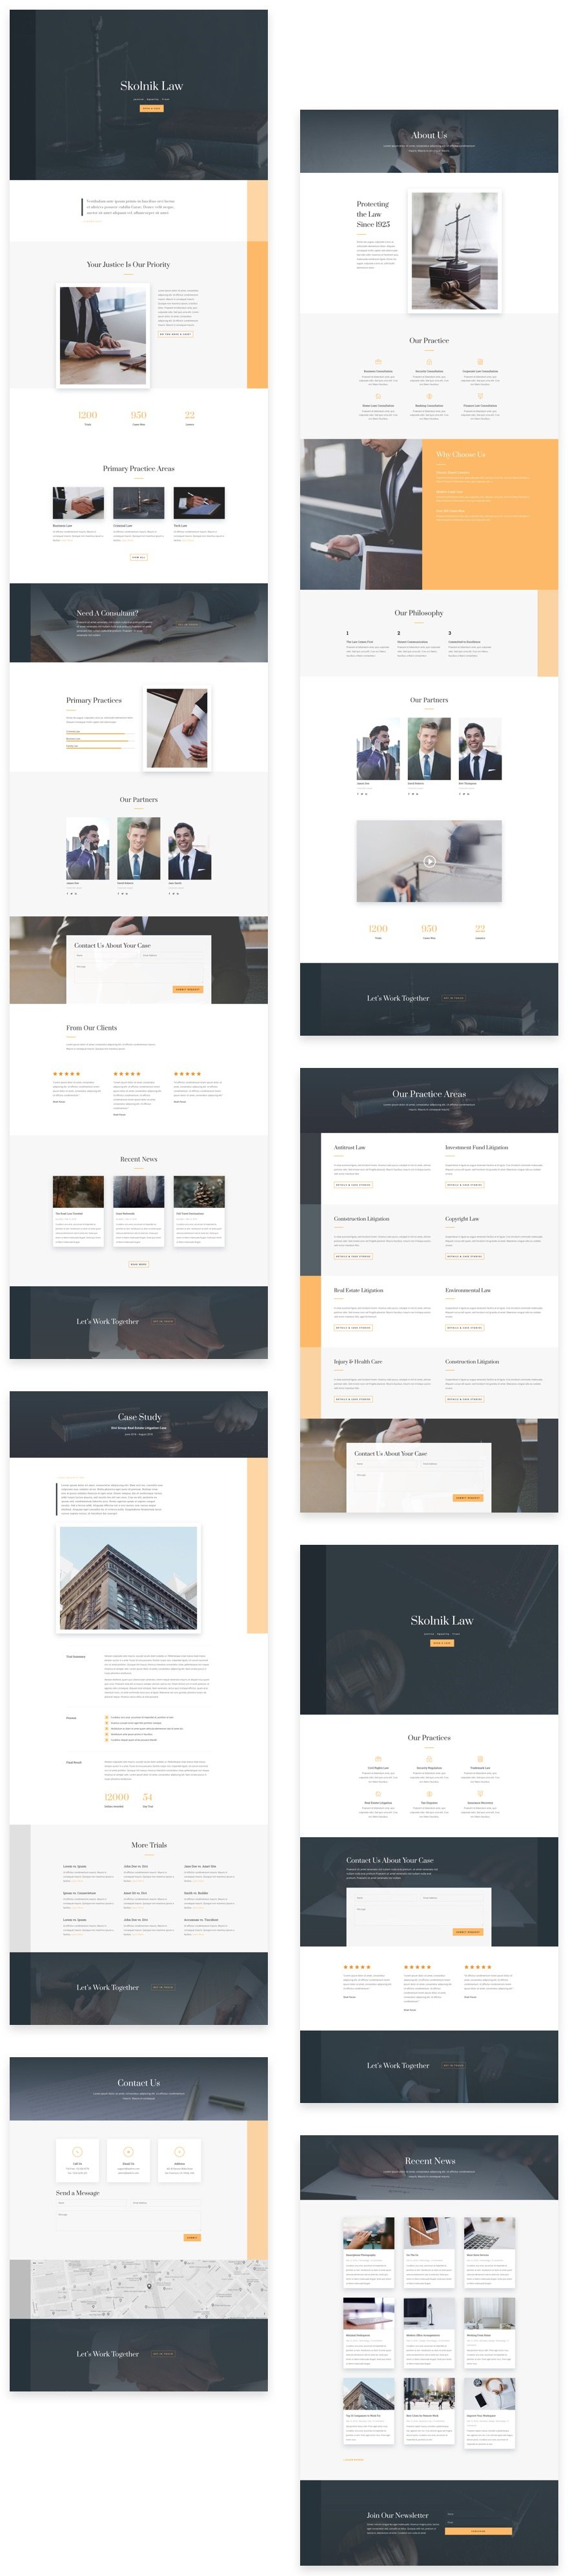 Get a Free Law Firm Layout Pack for Divi | Elegant Themes Blog